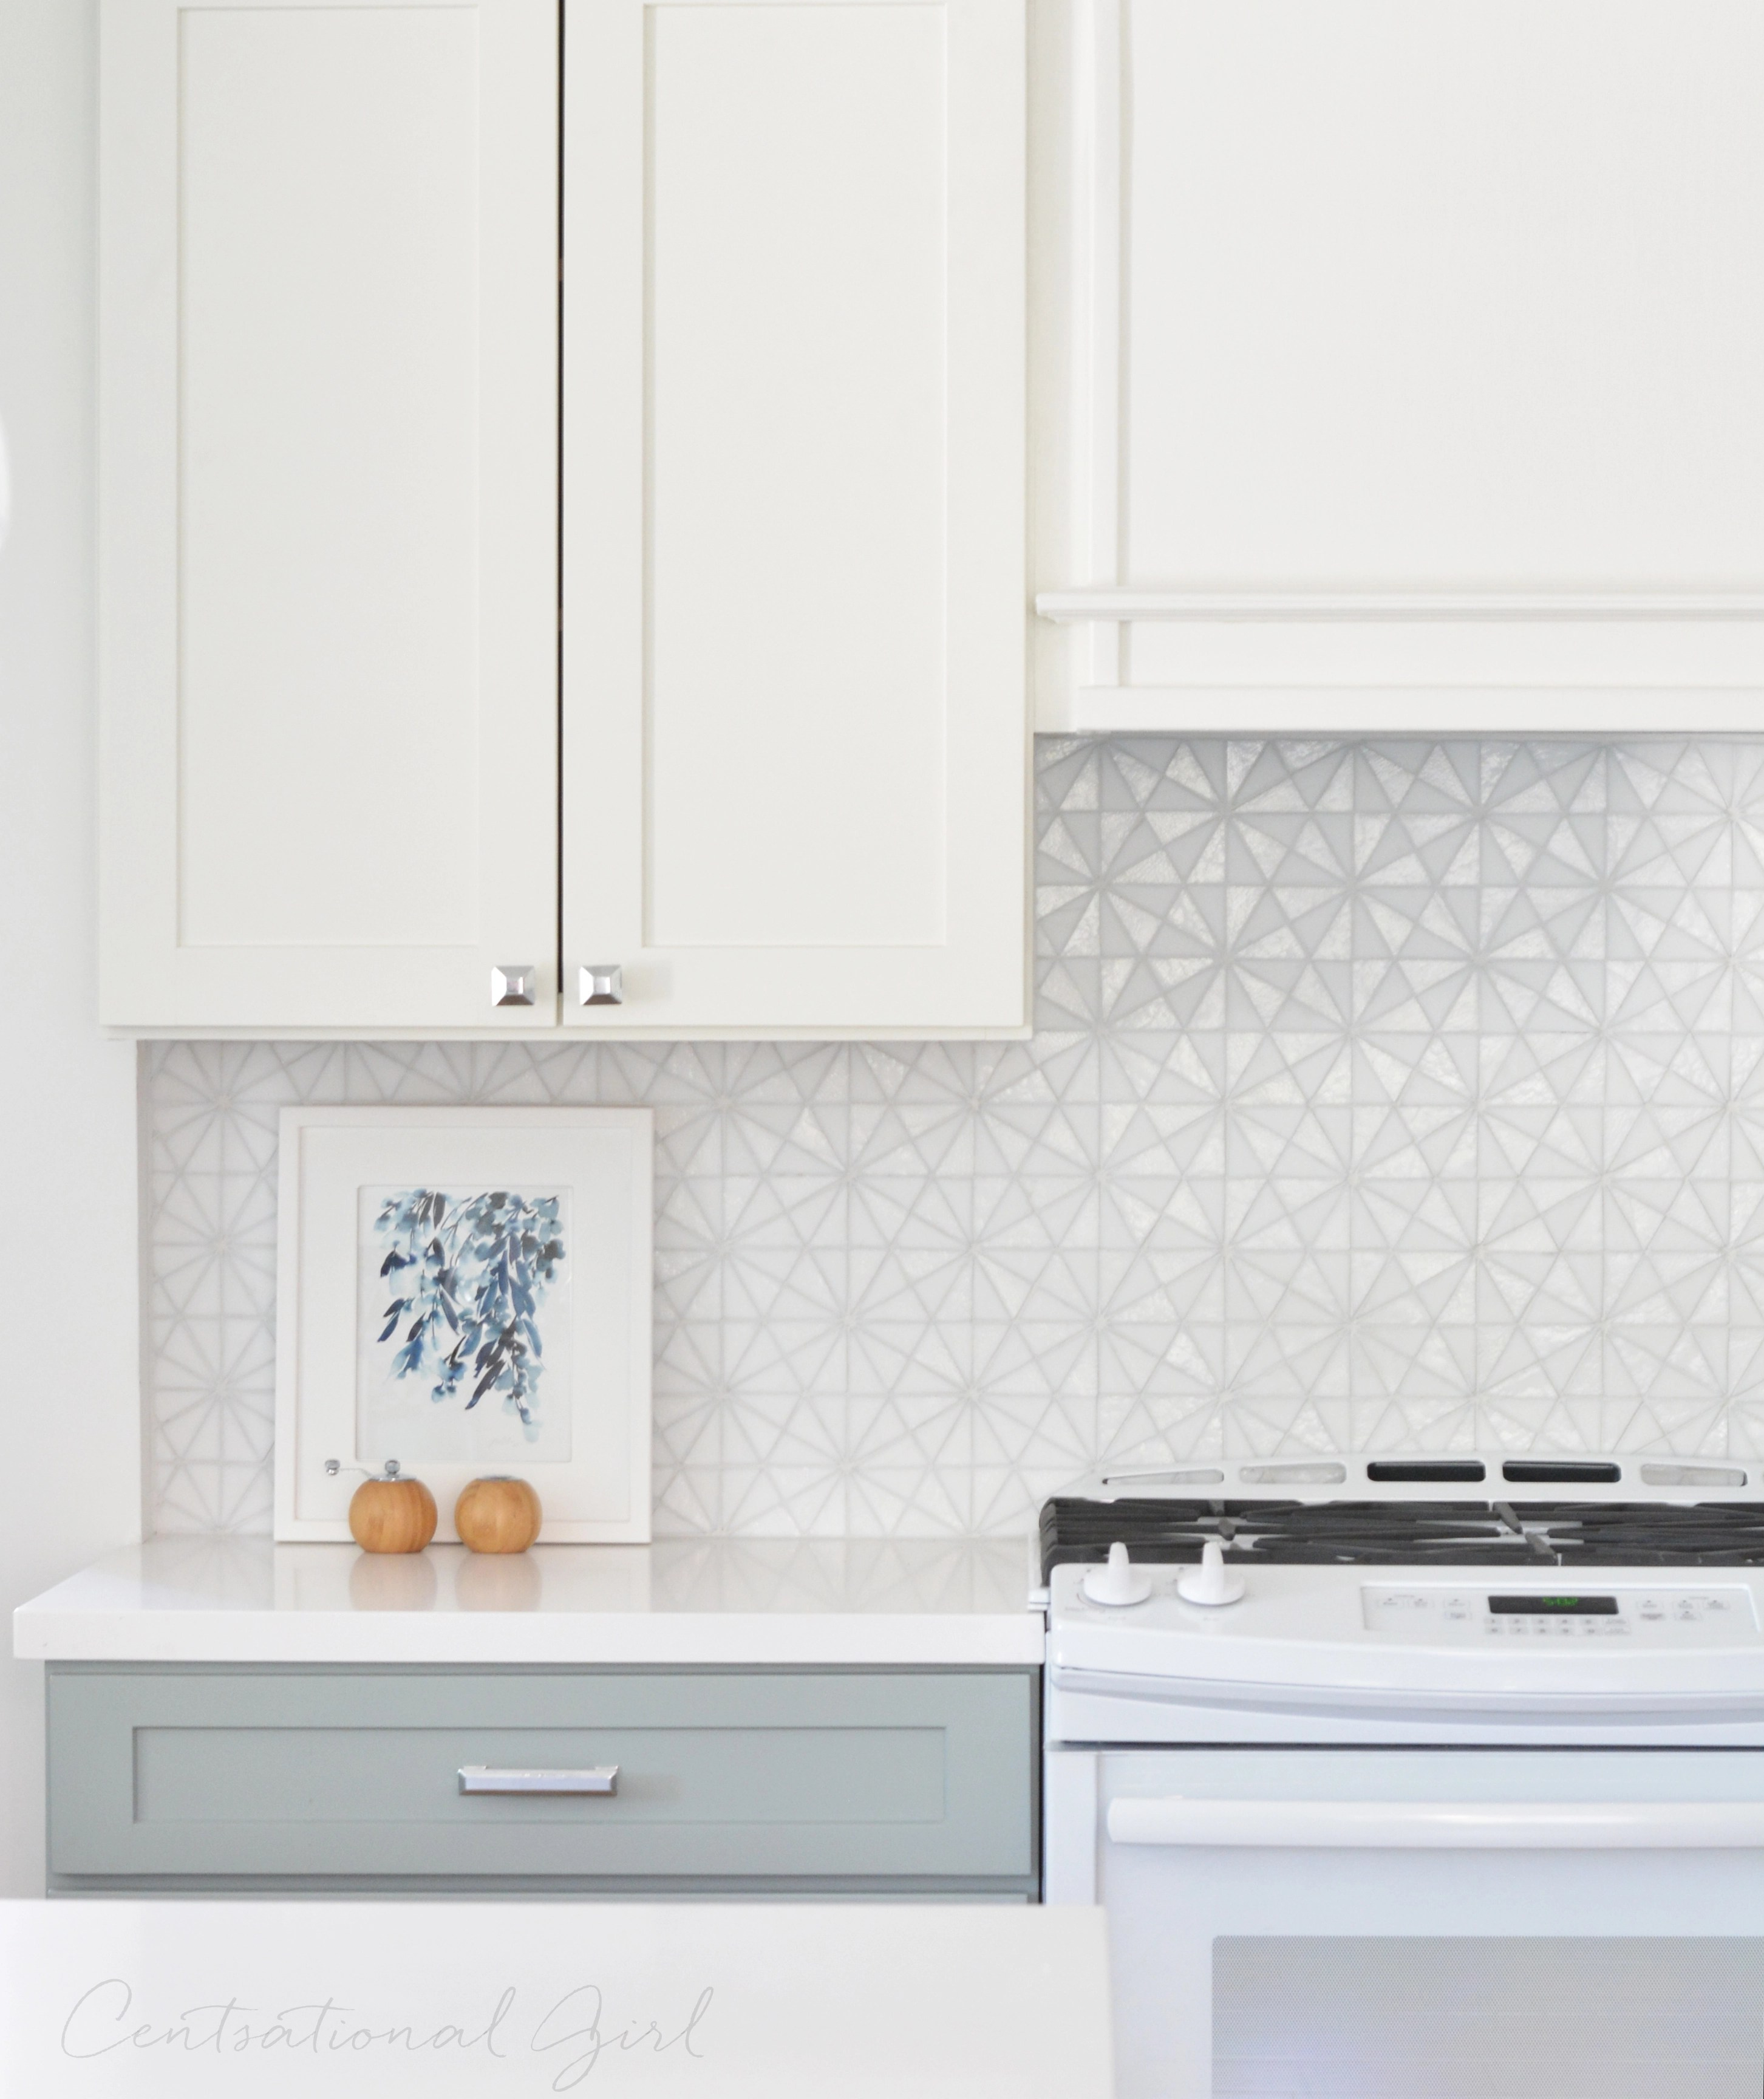 Modern Kitchen Backsplash 2015: Centsational Style